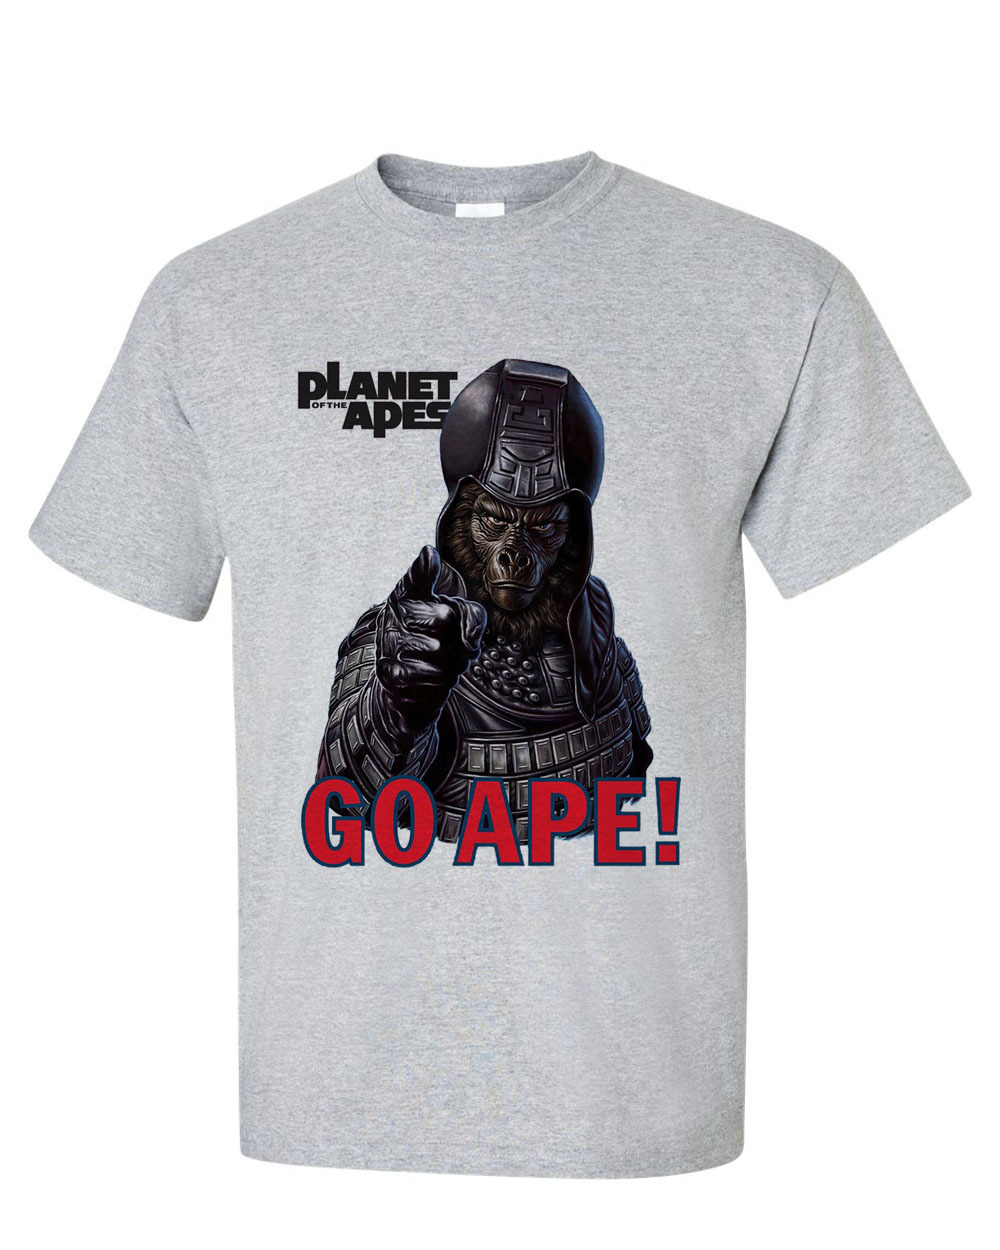 Planet of the Apes Go Ape!  T-shirt retro sci fi original film gray heather tee